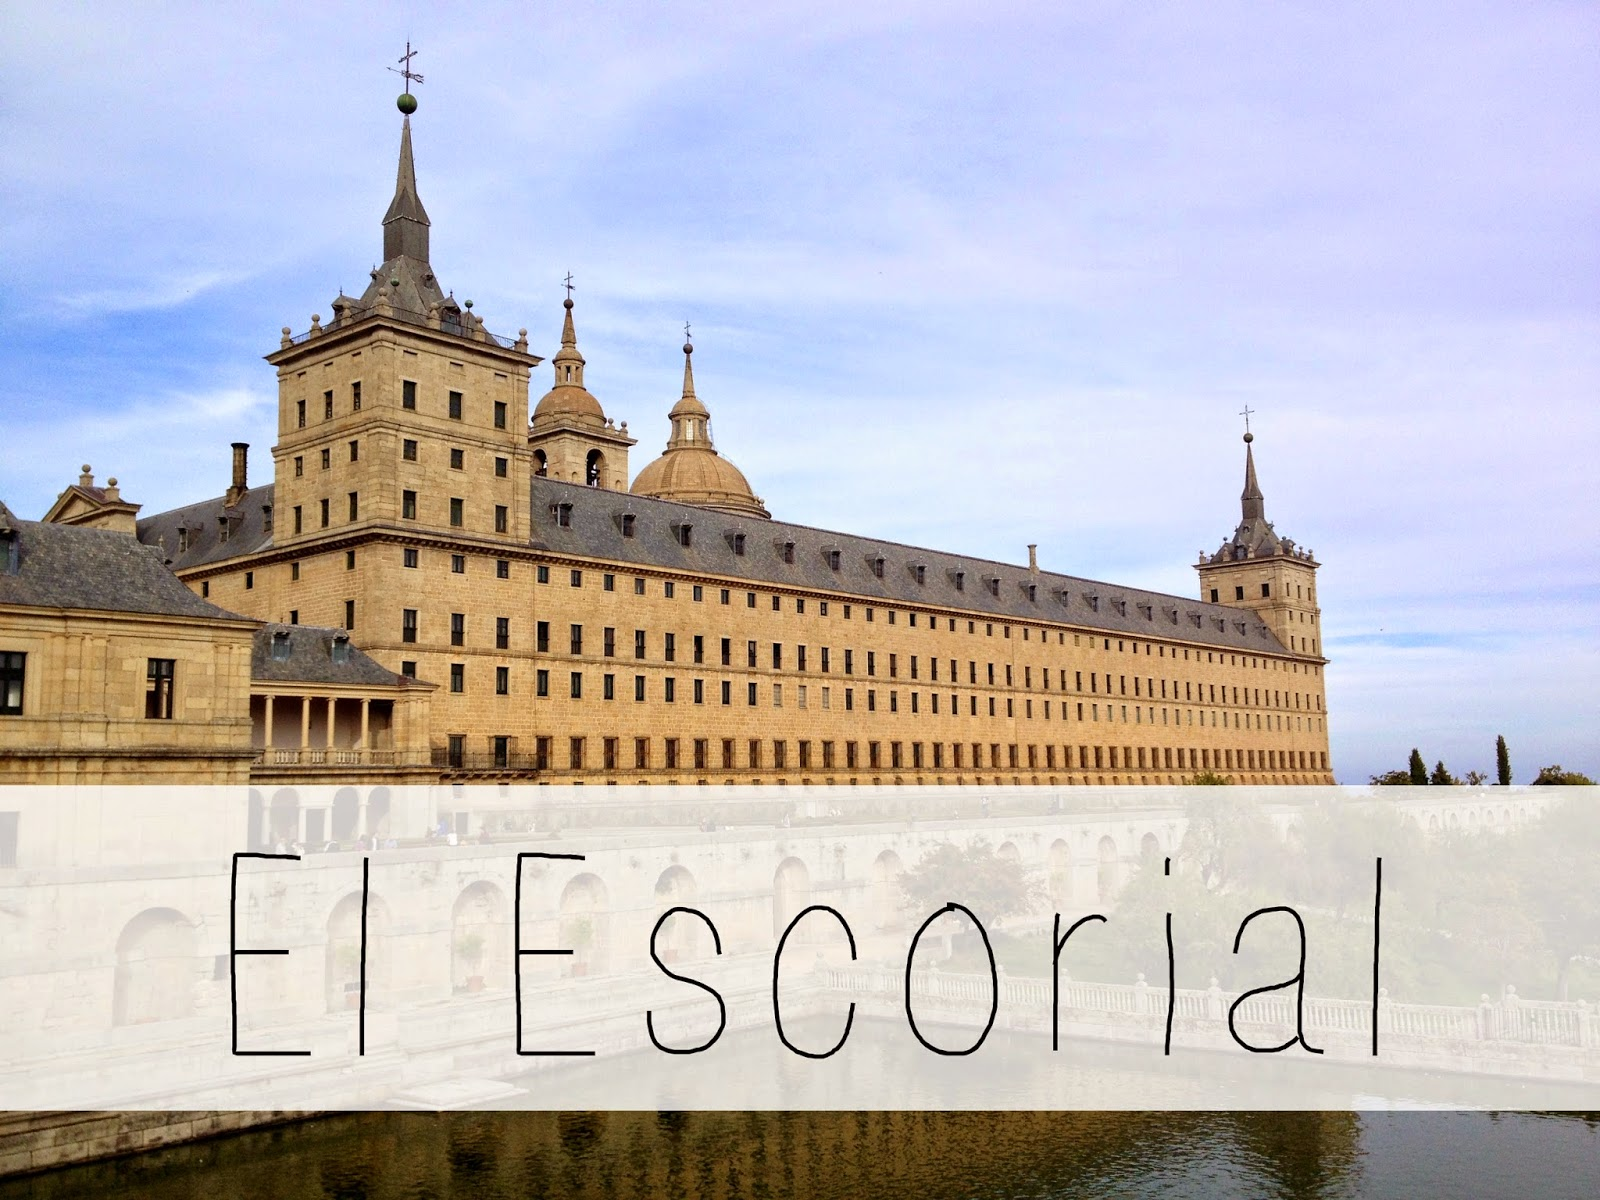 El Escorial: 5 best day trips from Madrid - all less than 2 hours away from the city center! | adelanteblog.com